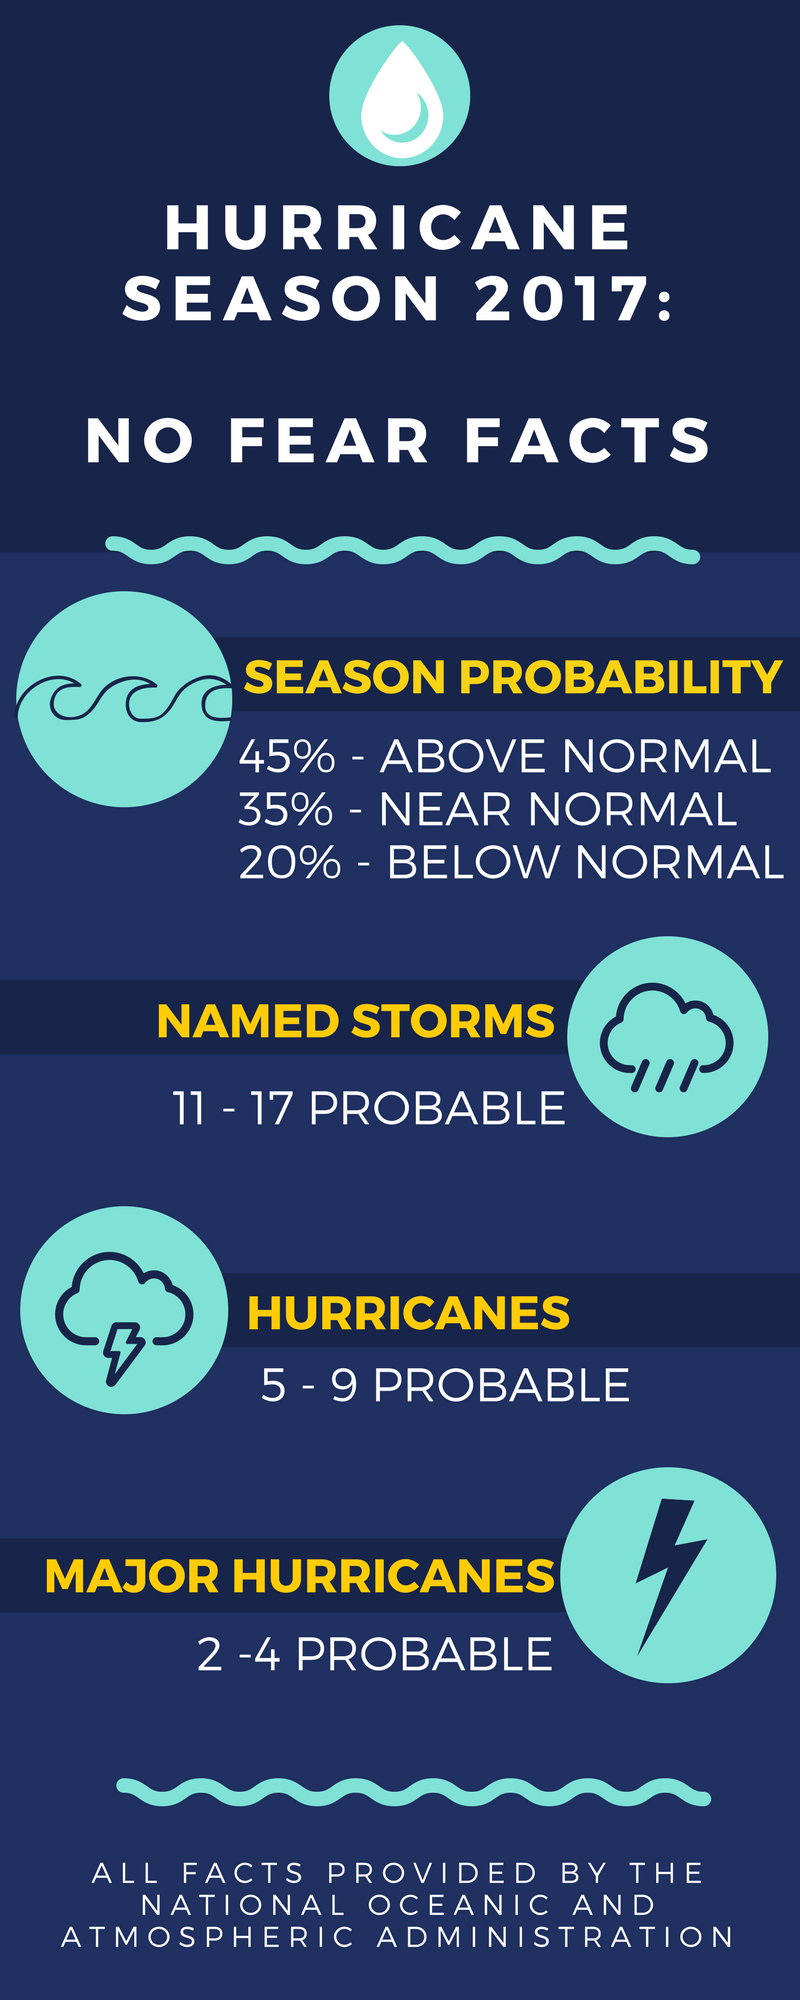 2017 Hurricane Season Outlook Info